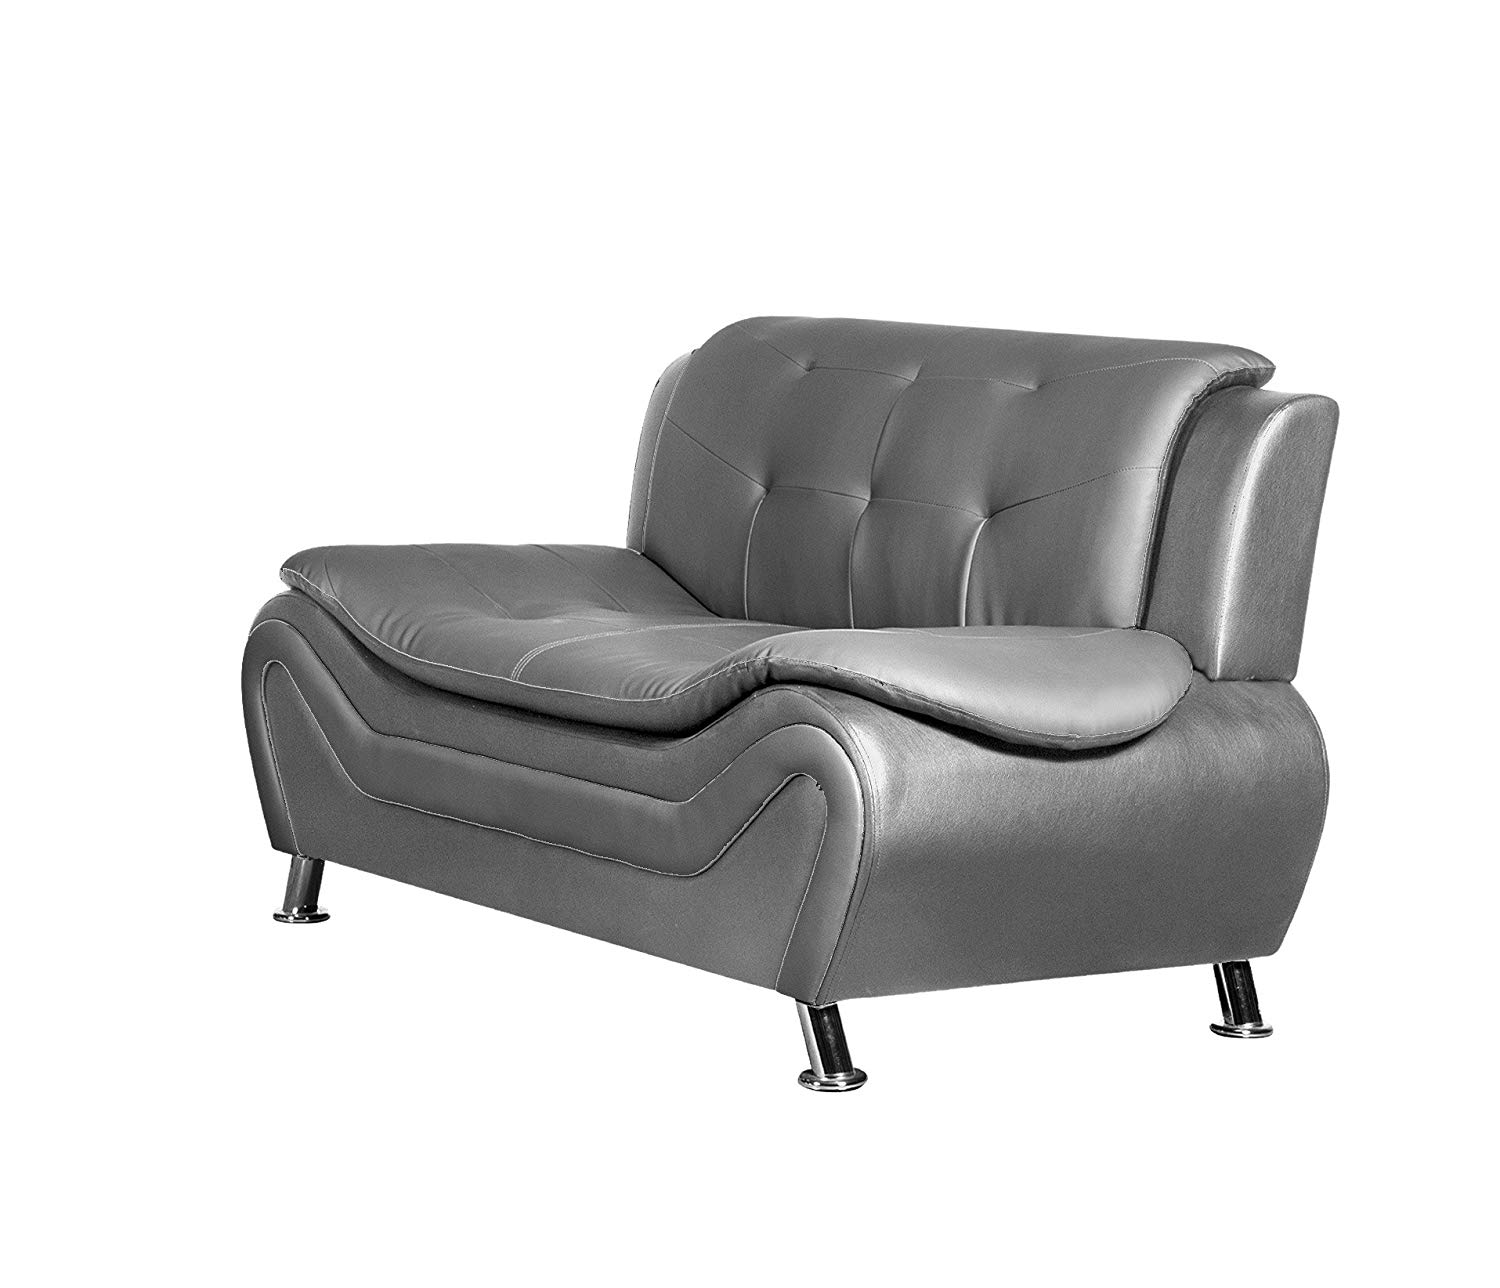 Get quotations · container furniture direct s5413 l arul leather air upholstered mid century modern loveseat grey